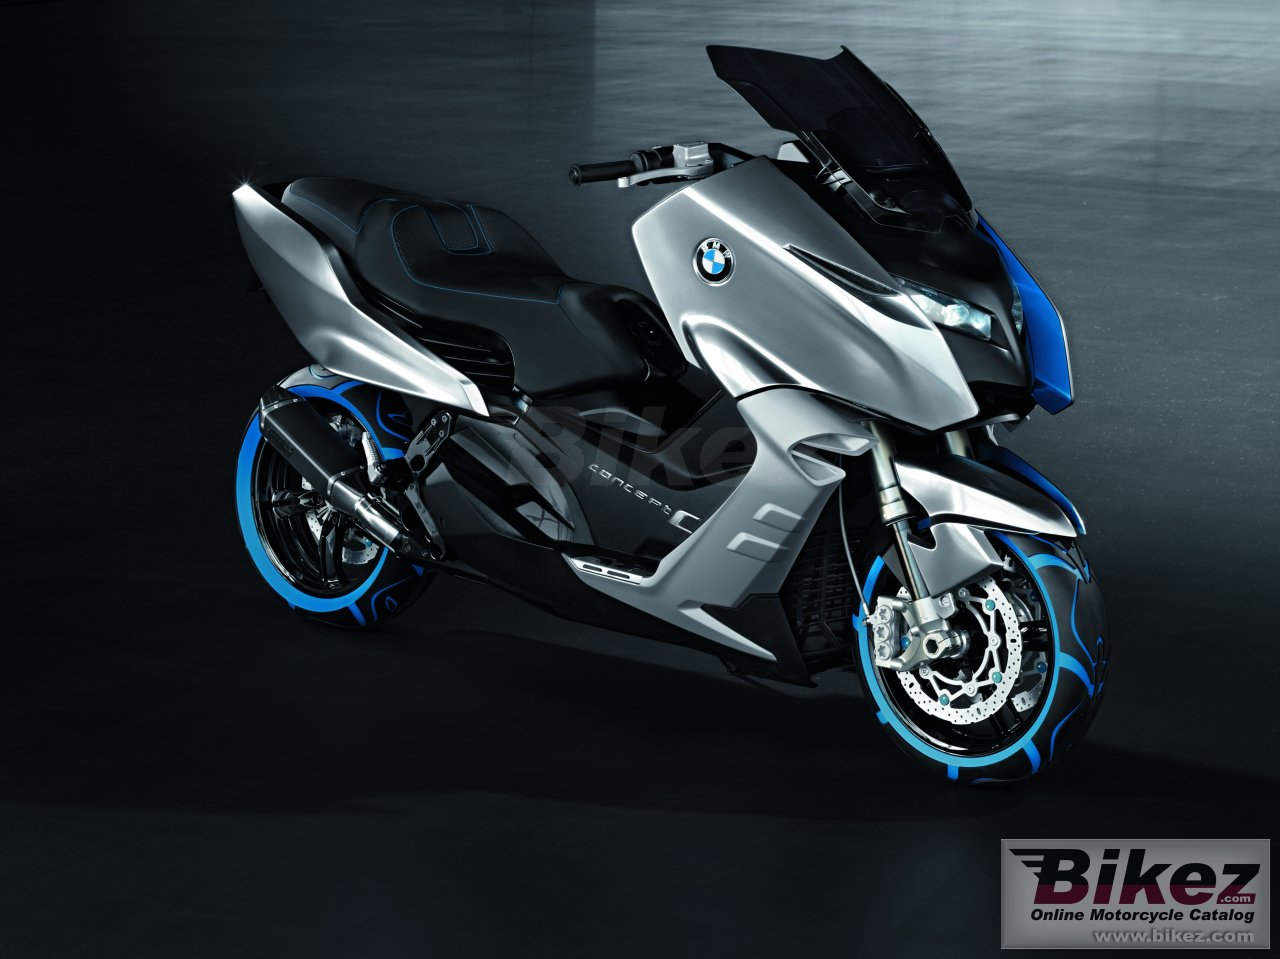 Big BMW concept c picture and wallpaper from Bikez.com